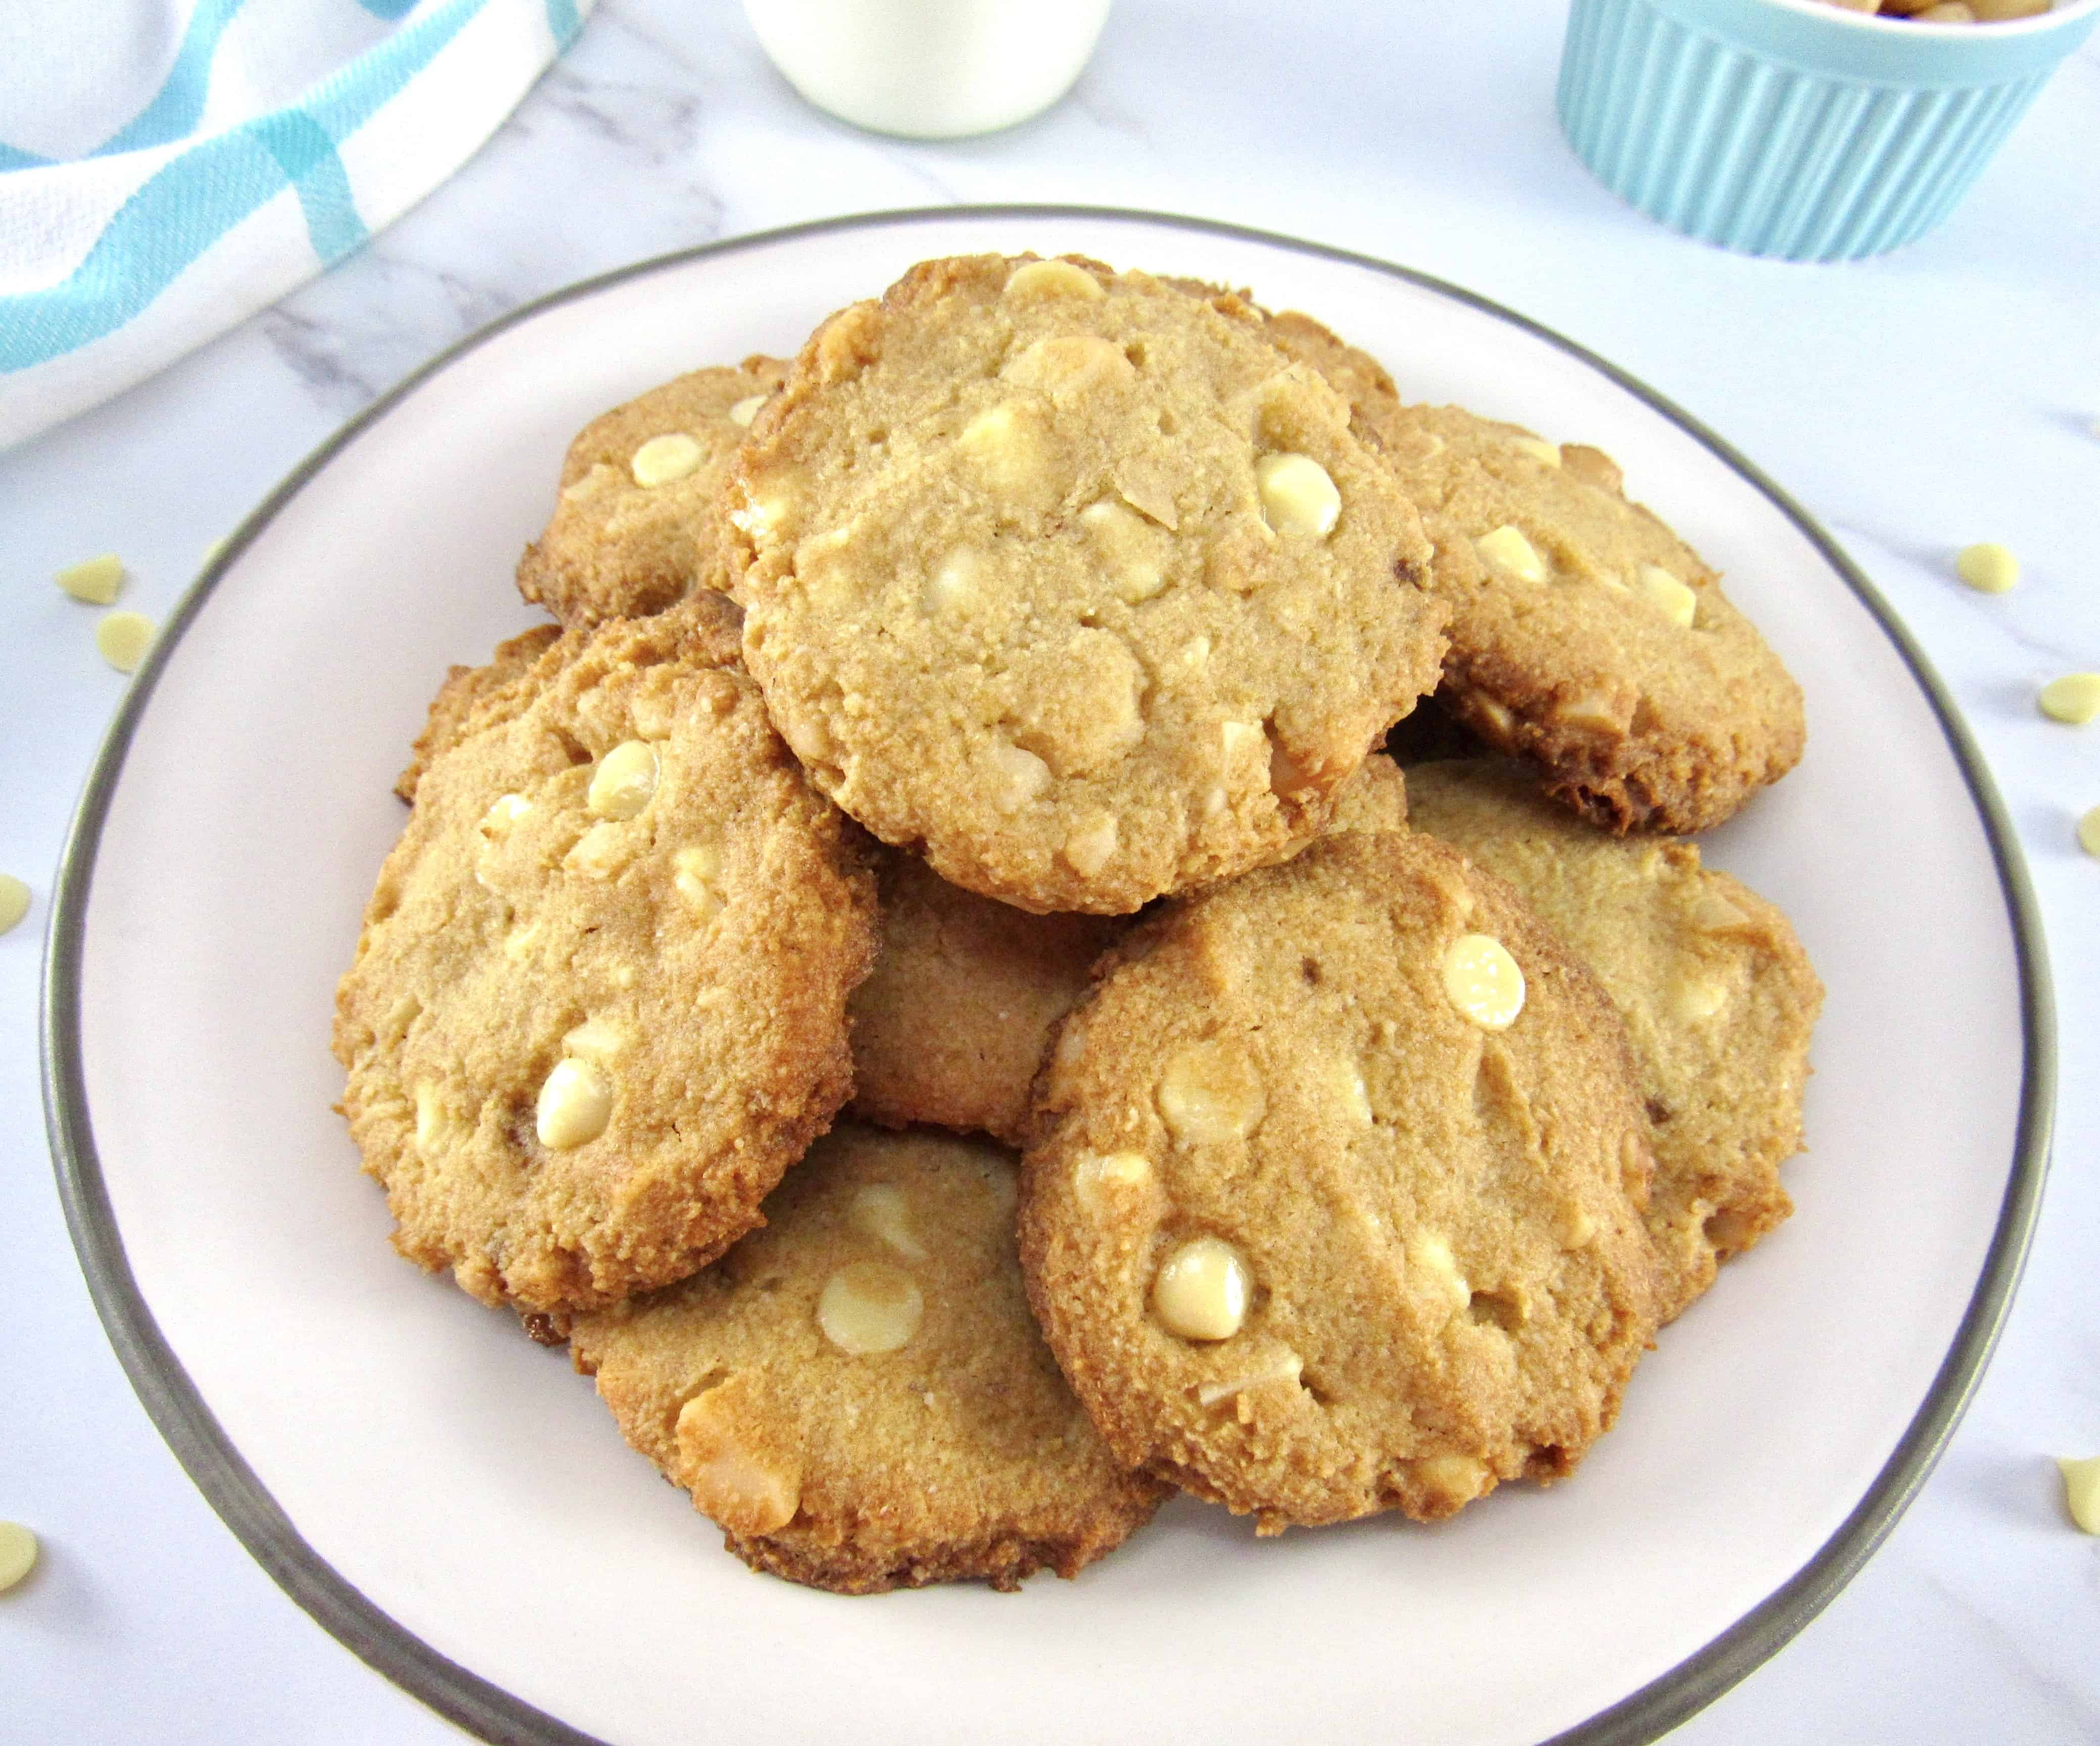 pile of white chocolate macadamia nut cookies on plate